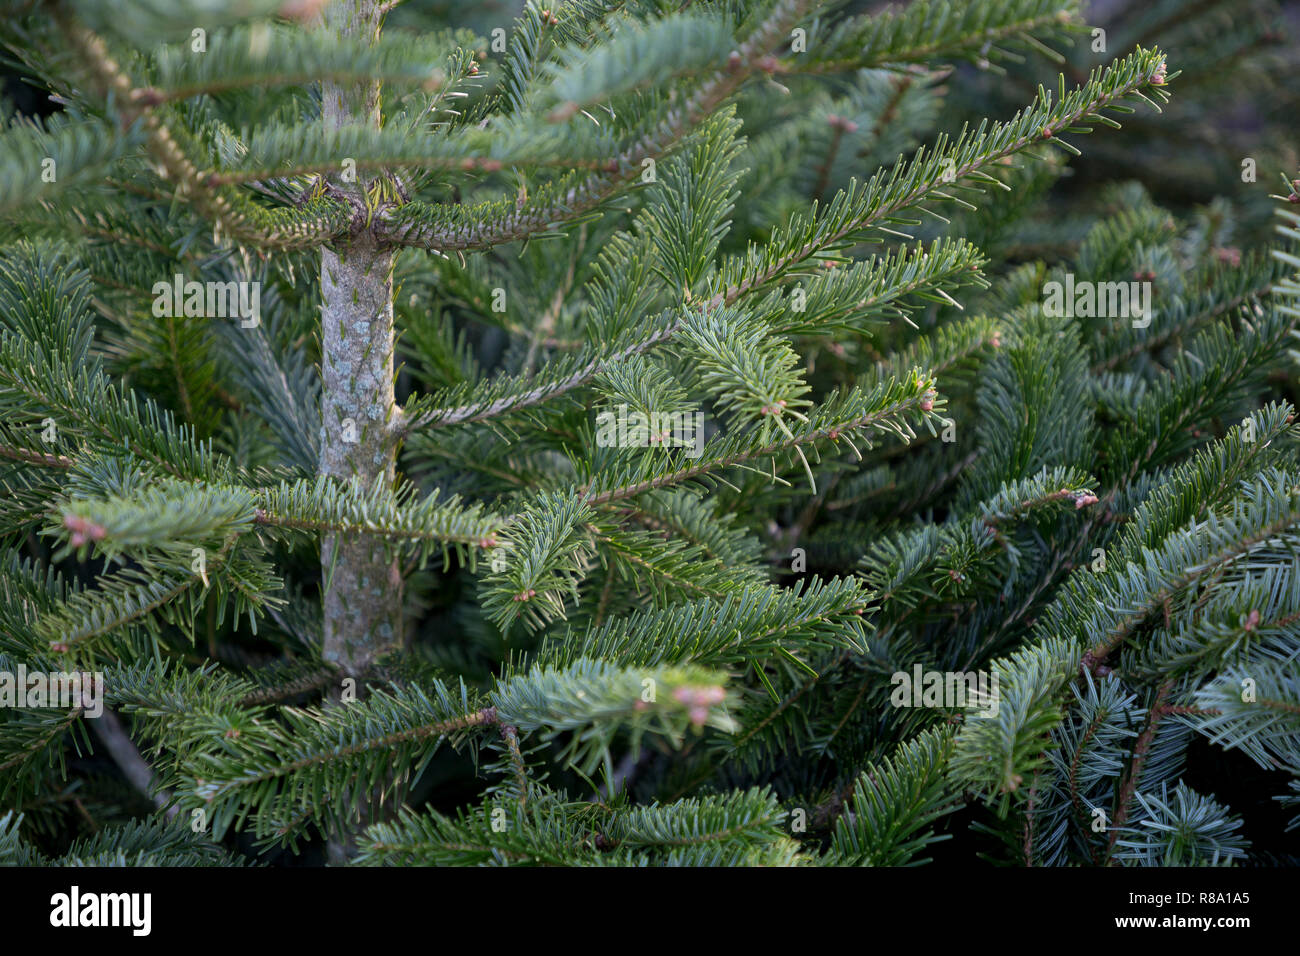 Foliage of Abies nordmanniana - Stock Image